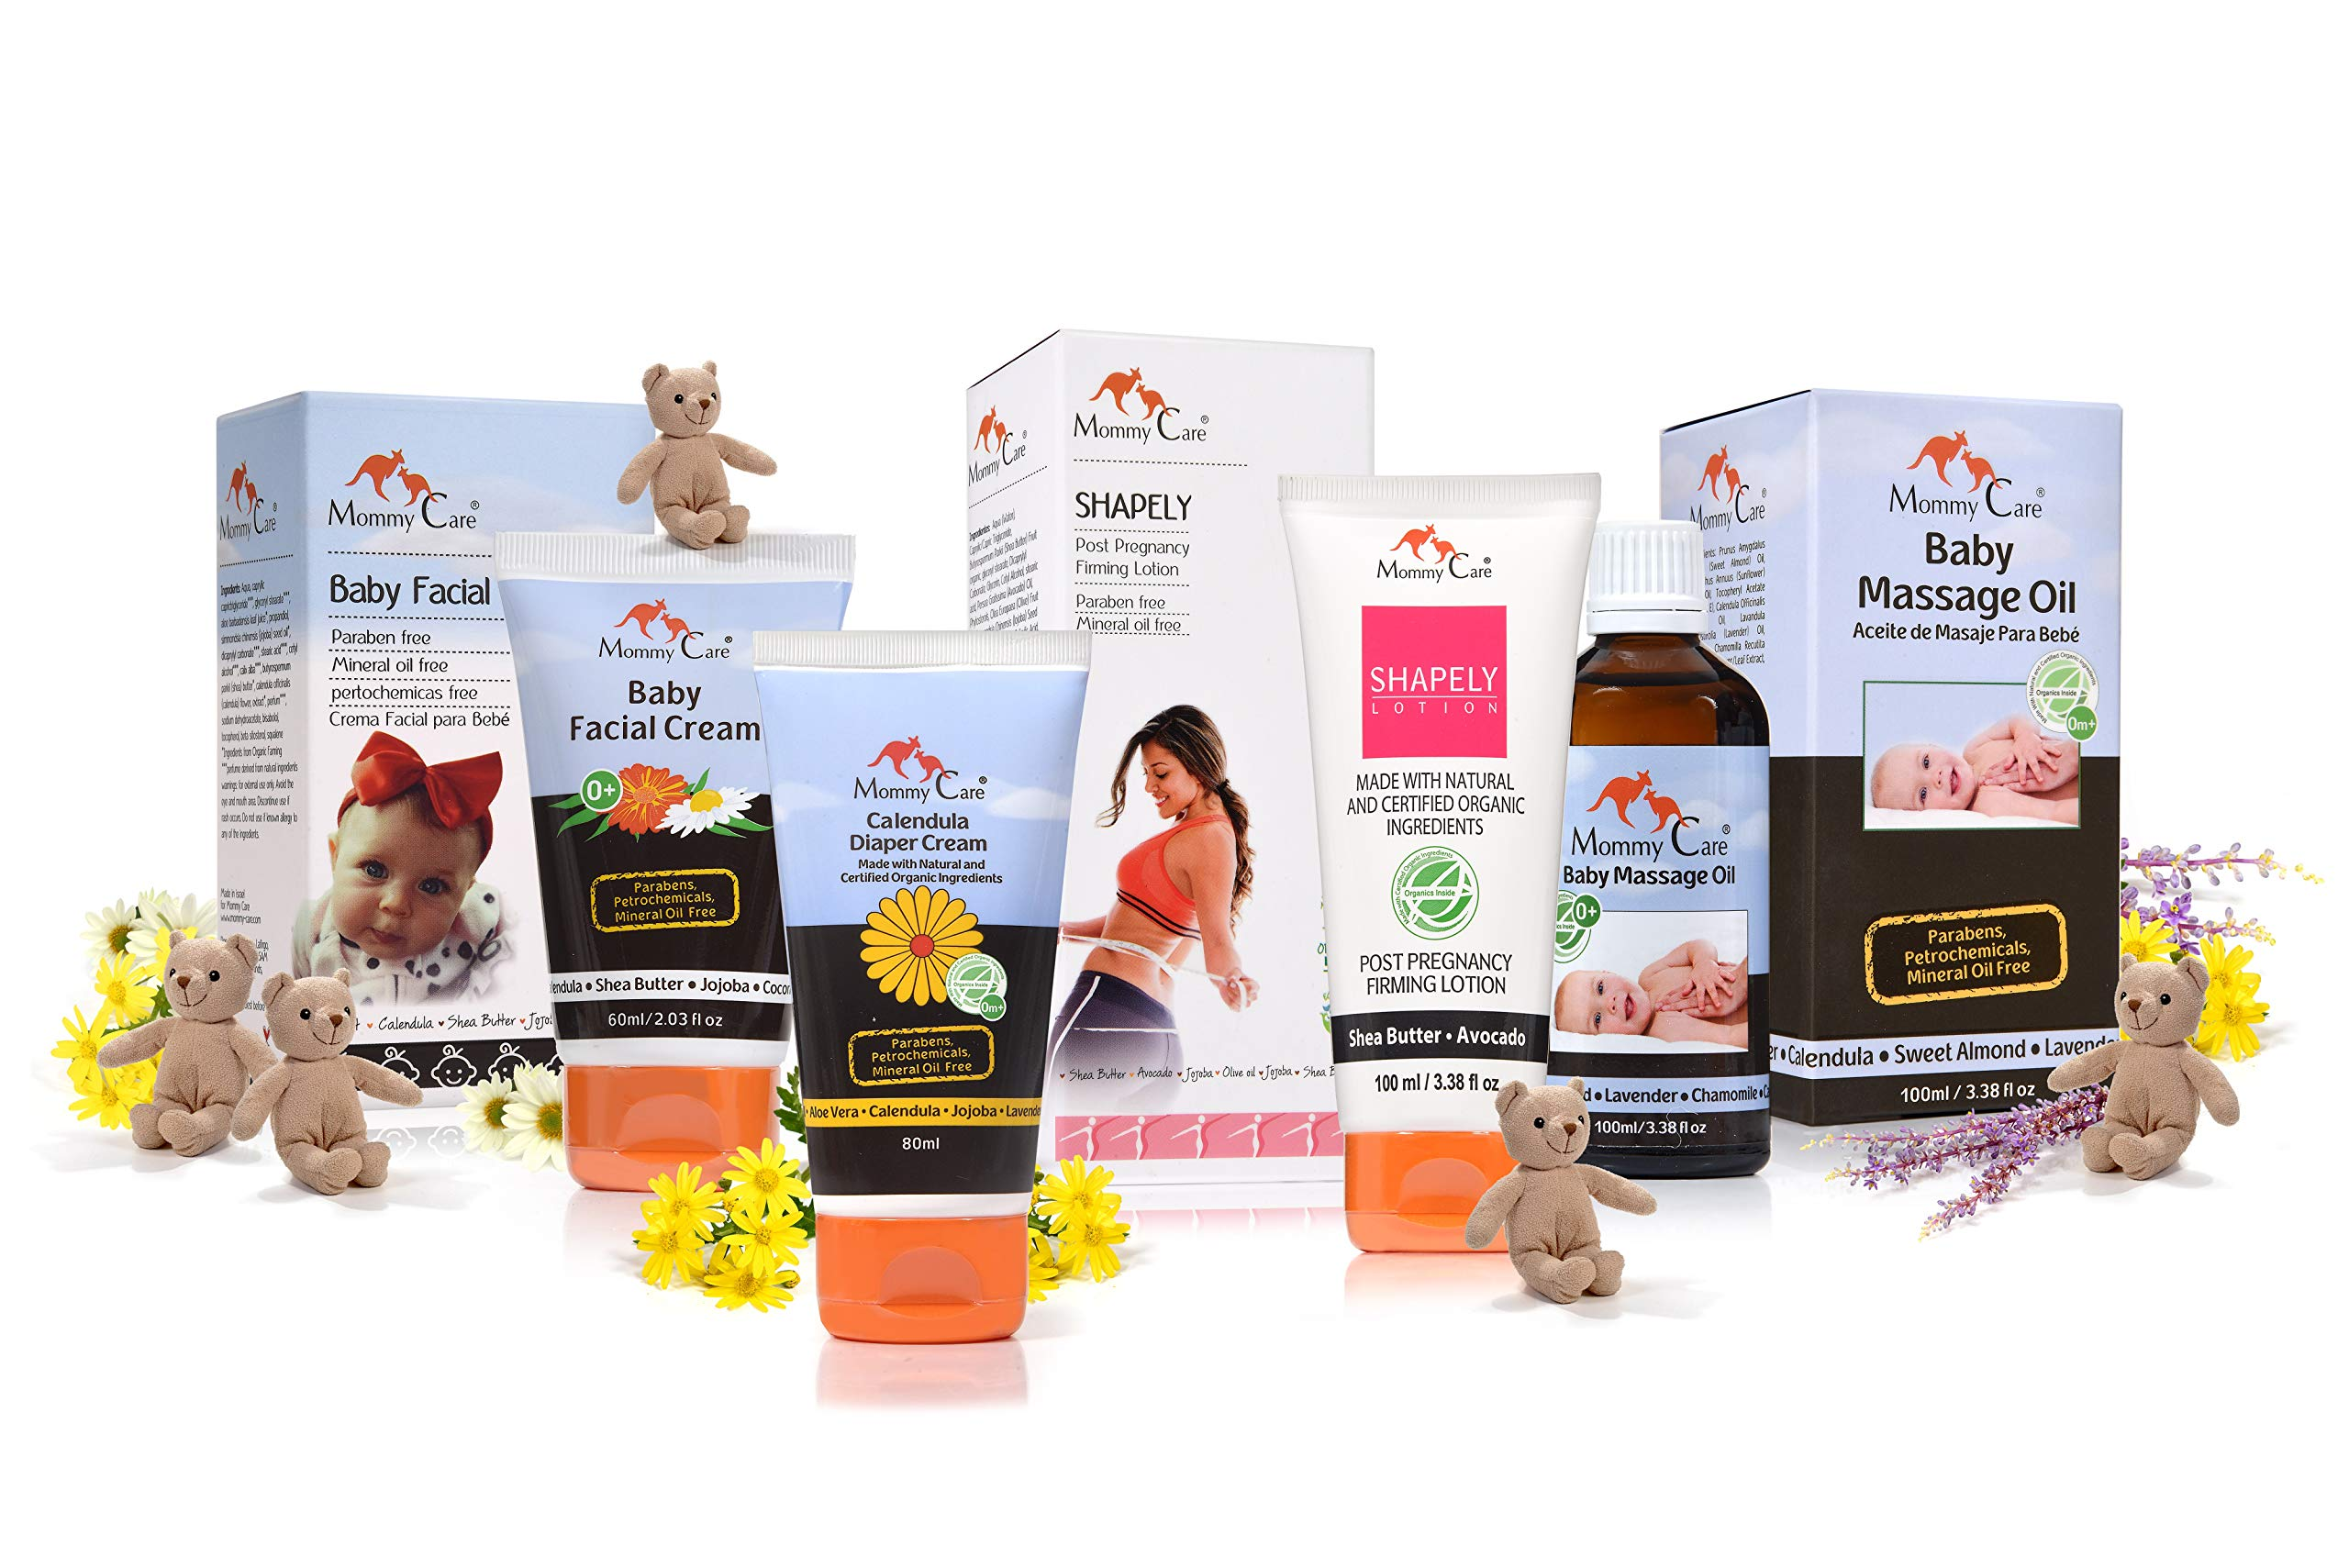 Value Pack - Maternity Skin Care Kit from Mommy Care - Includes Shapely [Belly Firming Cream] Baby Face Cream, Calendula Diaper Rash Cream and Baby Massage Oil - Organic Vegan Natural Products by MOMMY CARE